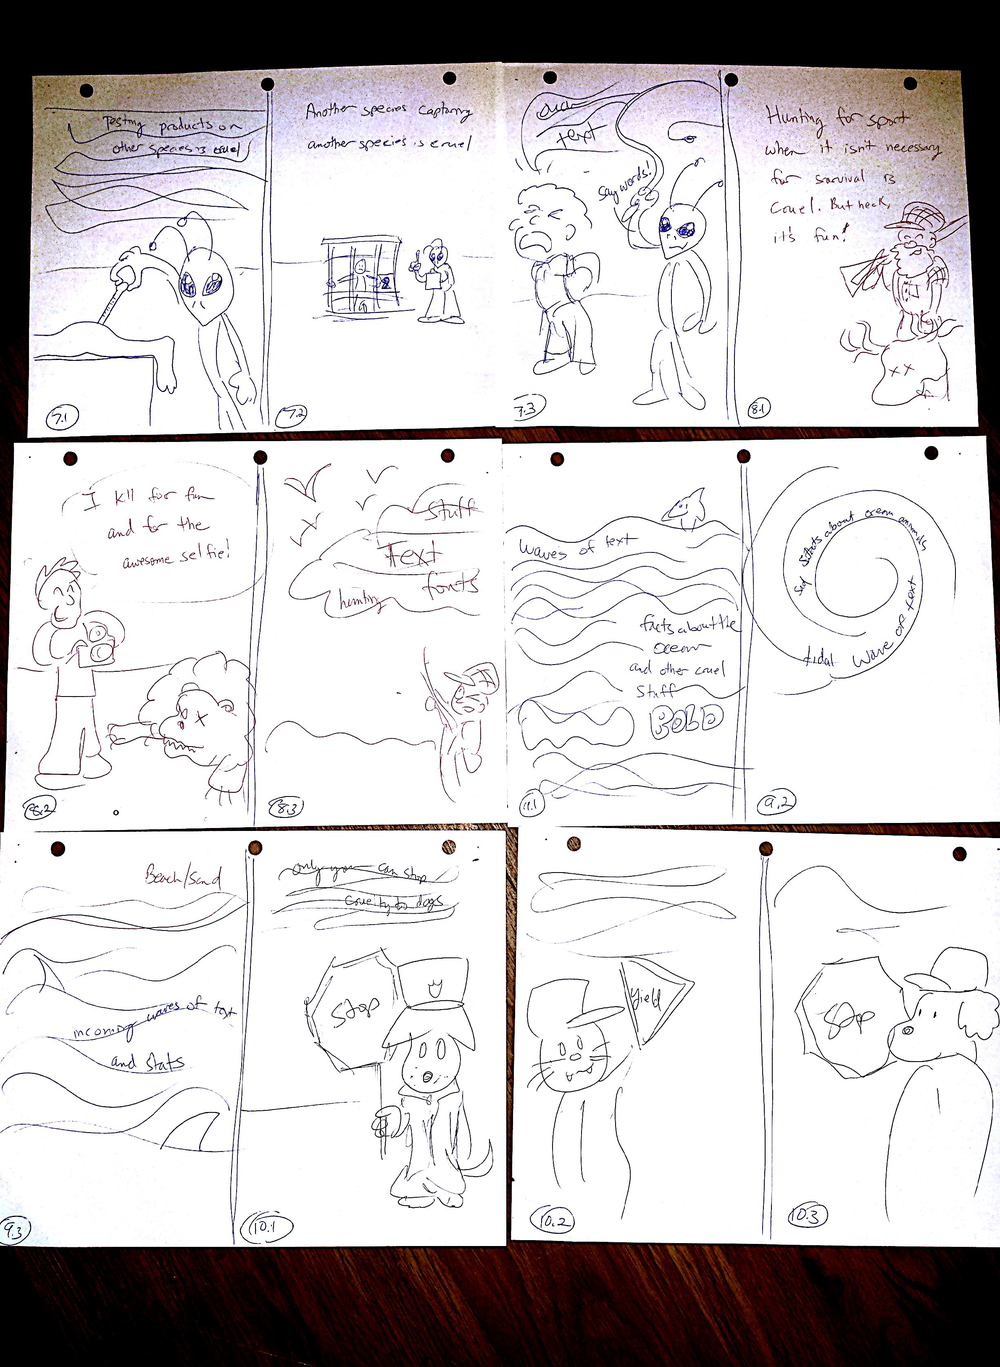 Drafts and Sketches Animal Cruelty_Page_1_Image_0001.png